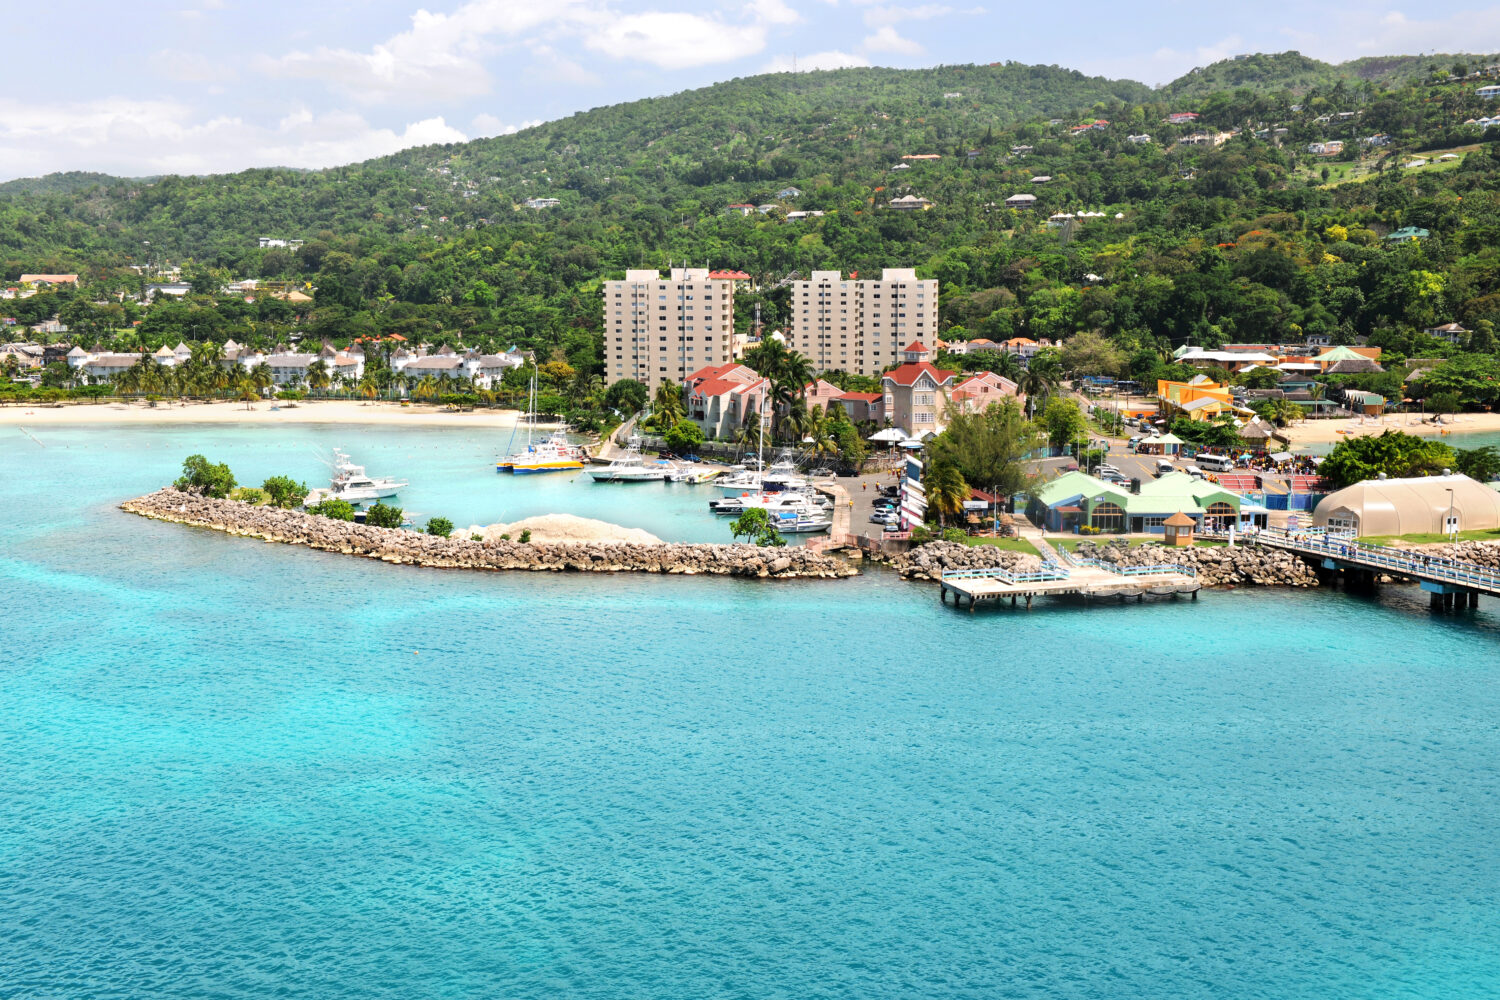 Aerial view of Ocho Rios Jamaica during daytime